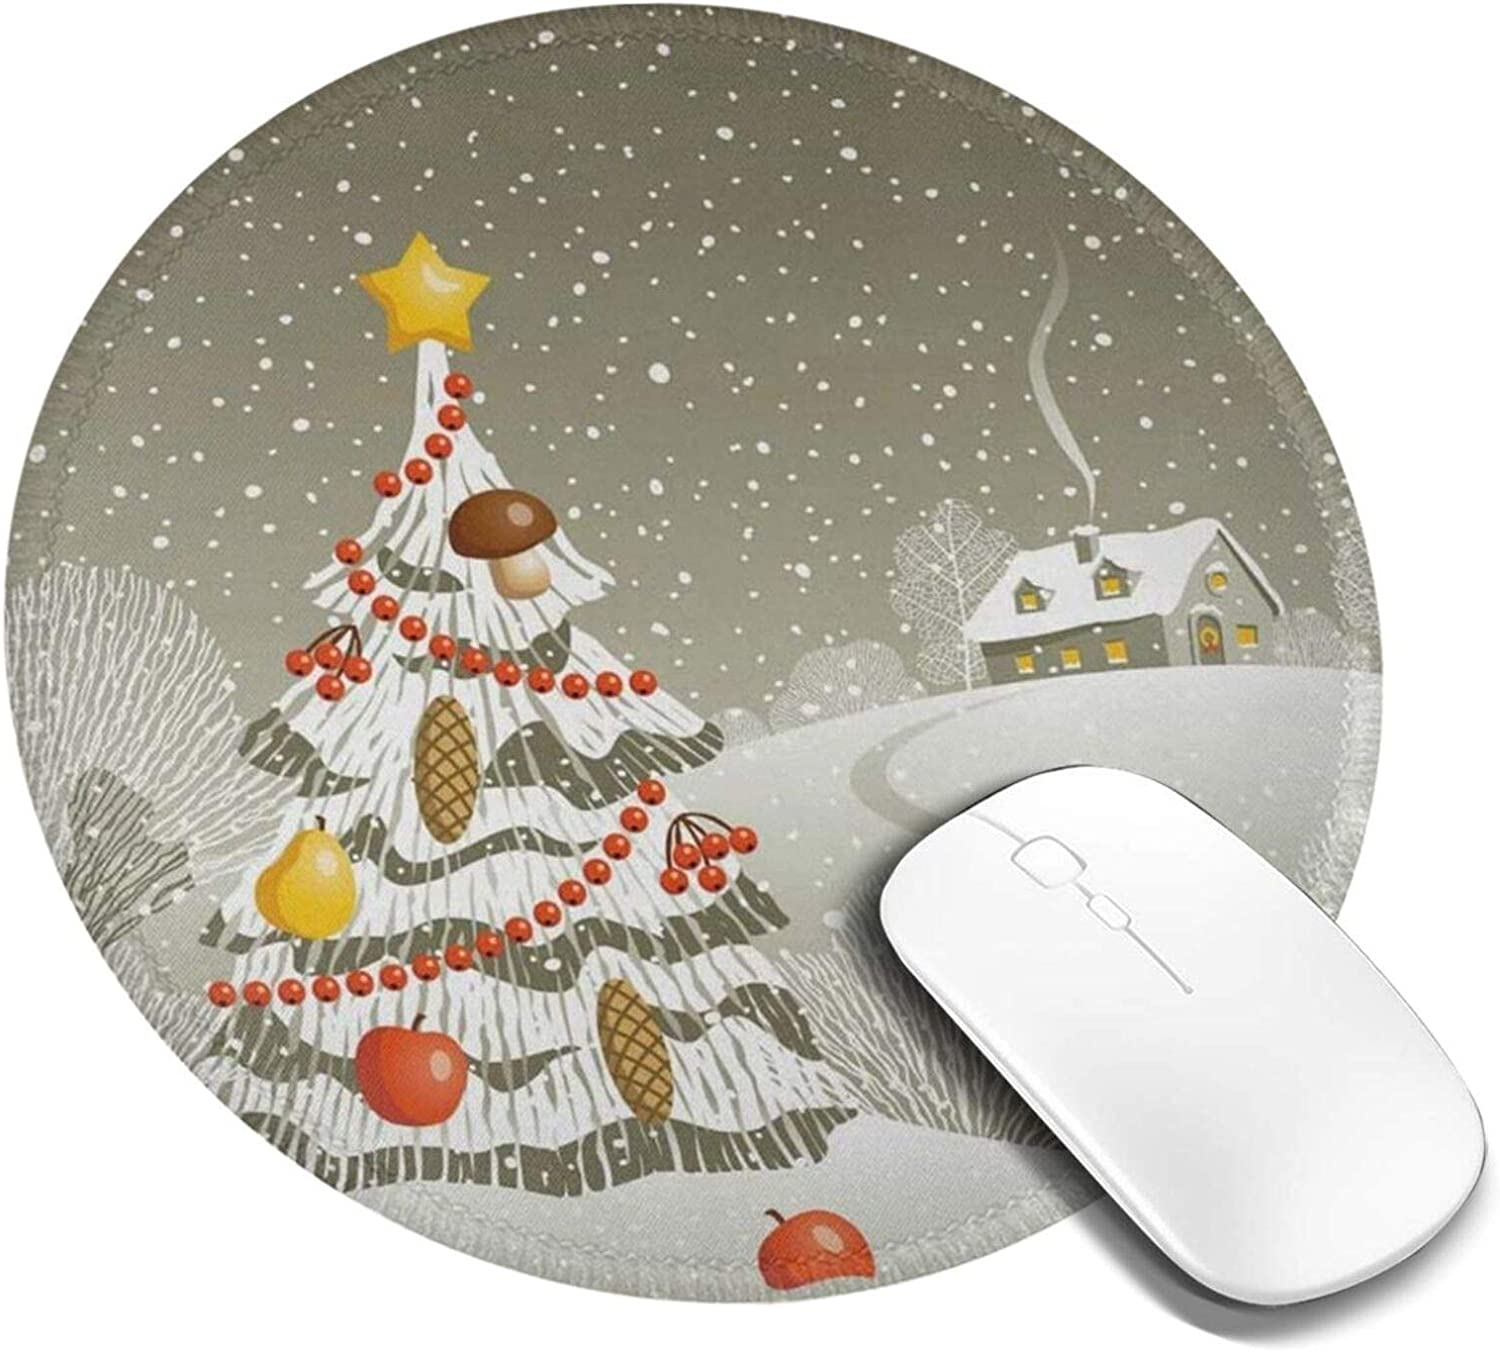 Mini Mouse Pad Round Merry Christmas Eve Winter Grey Computer Mouse Pads Laptop Mousepad Circle Small Cute Personalized Gaming Mouse Mat for Women Kids Girls Boys Men Non Slip 7.9 X 7.9